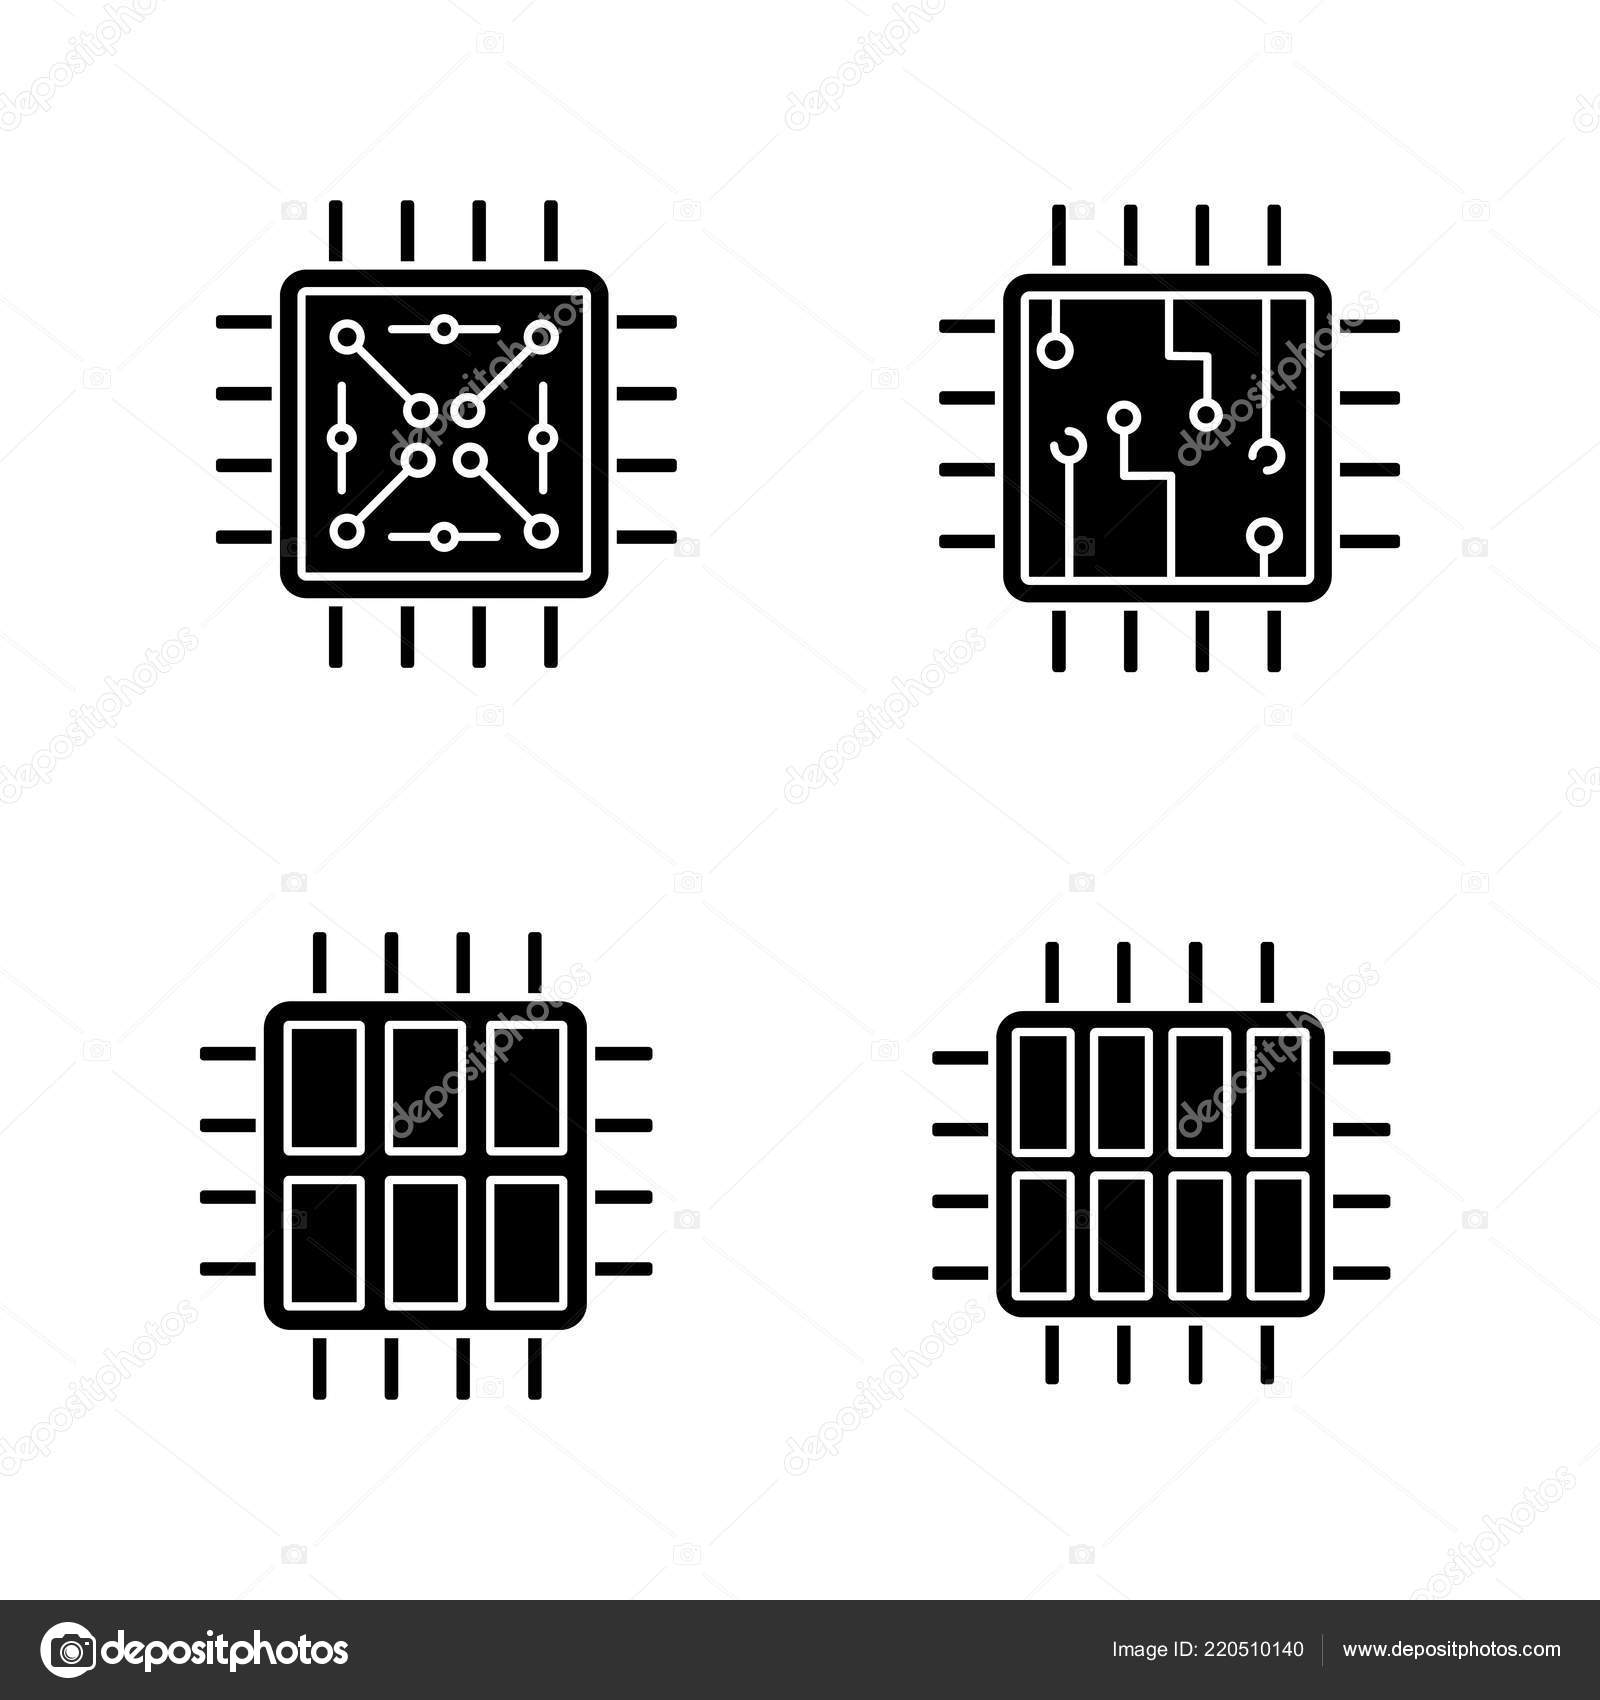 Processors Glyph Icons Set Chip Microprocessor Integrated Unit Six Circuit Symbols Components And Octa Core Silhouette Vector Isolated Illustration By Bsd